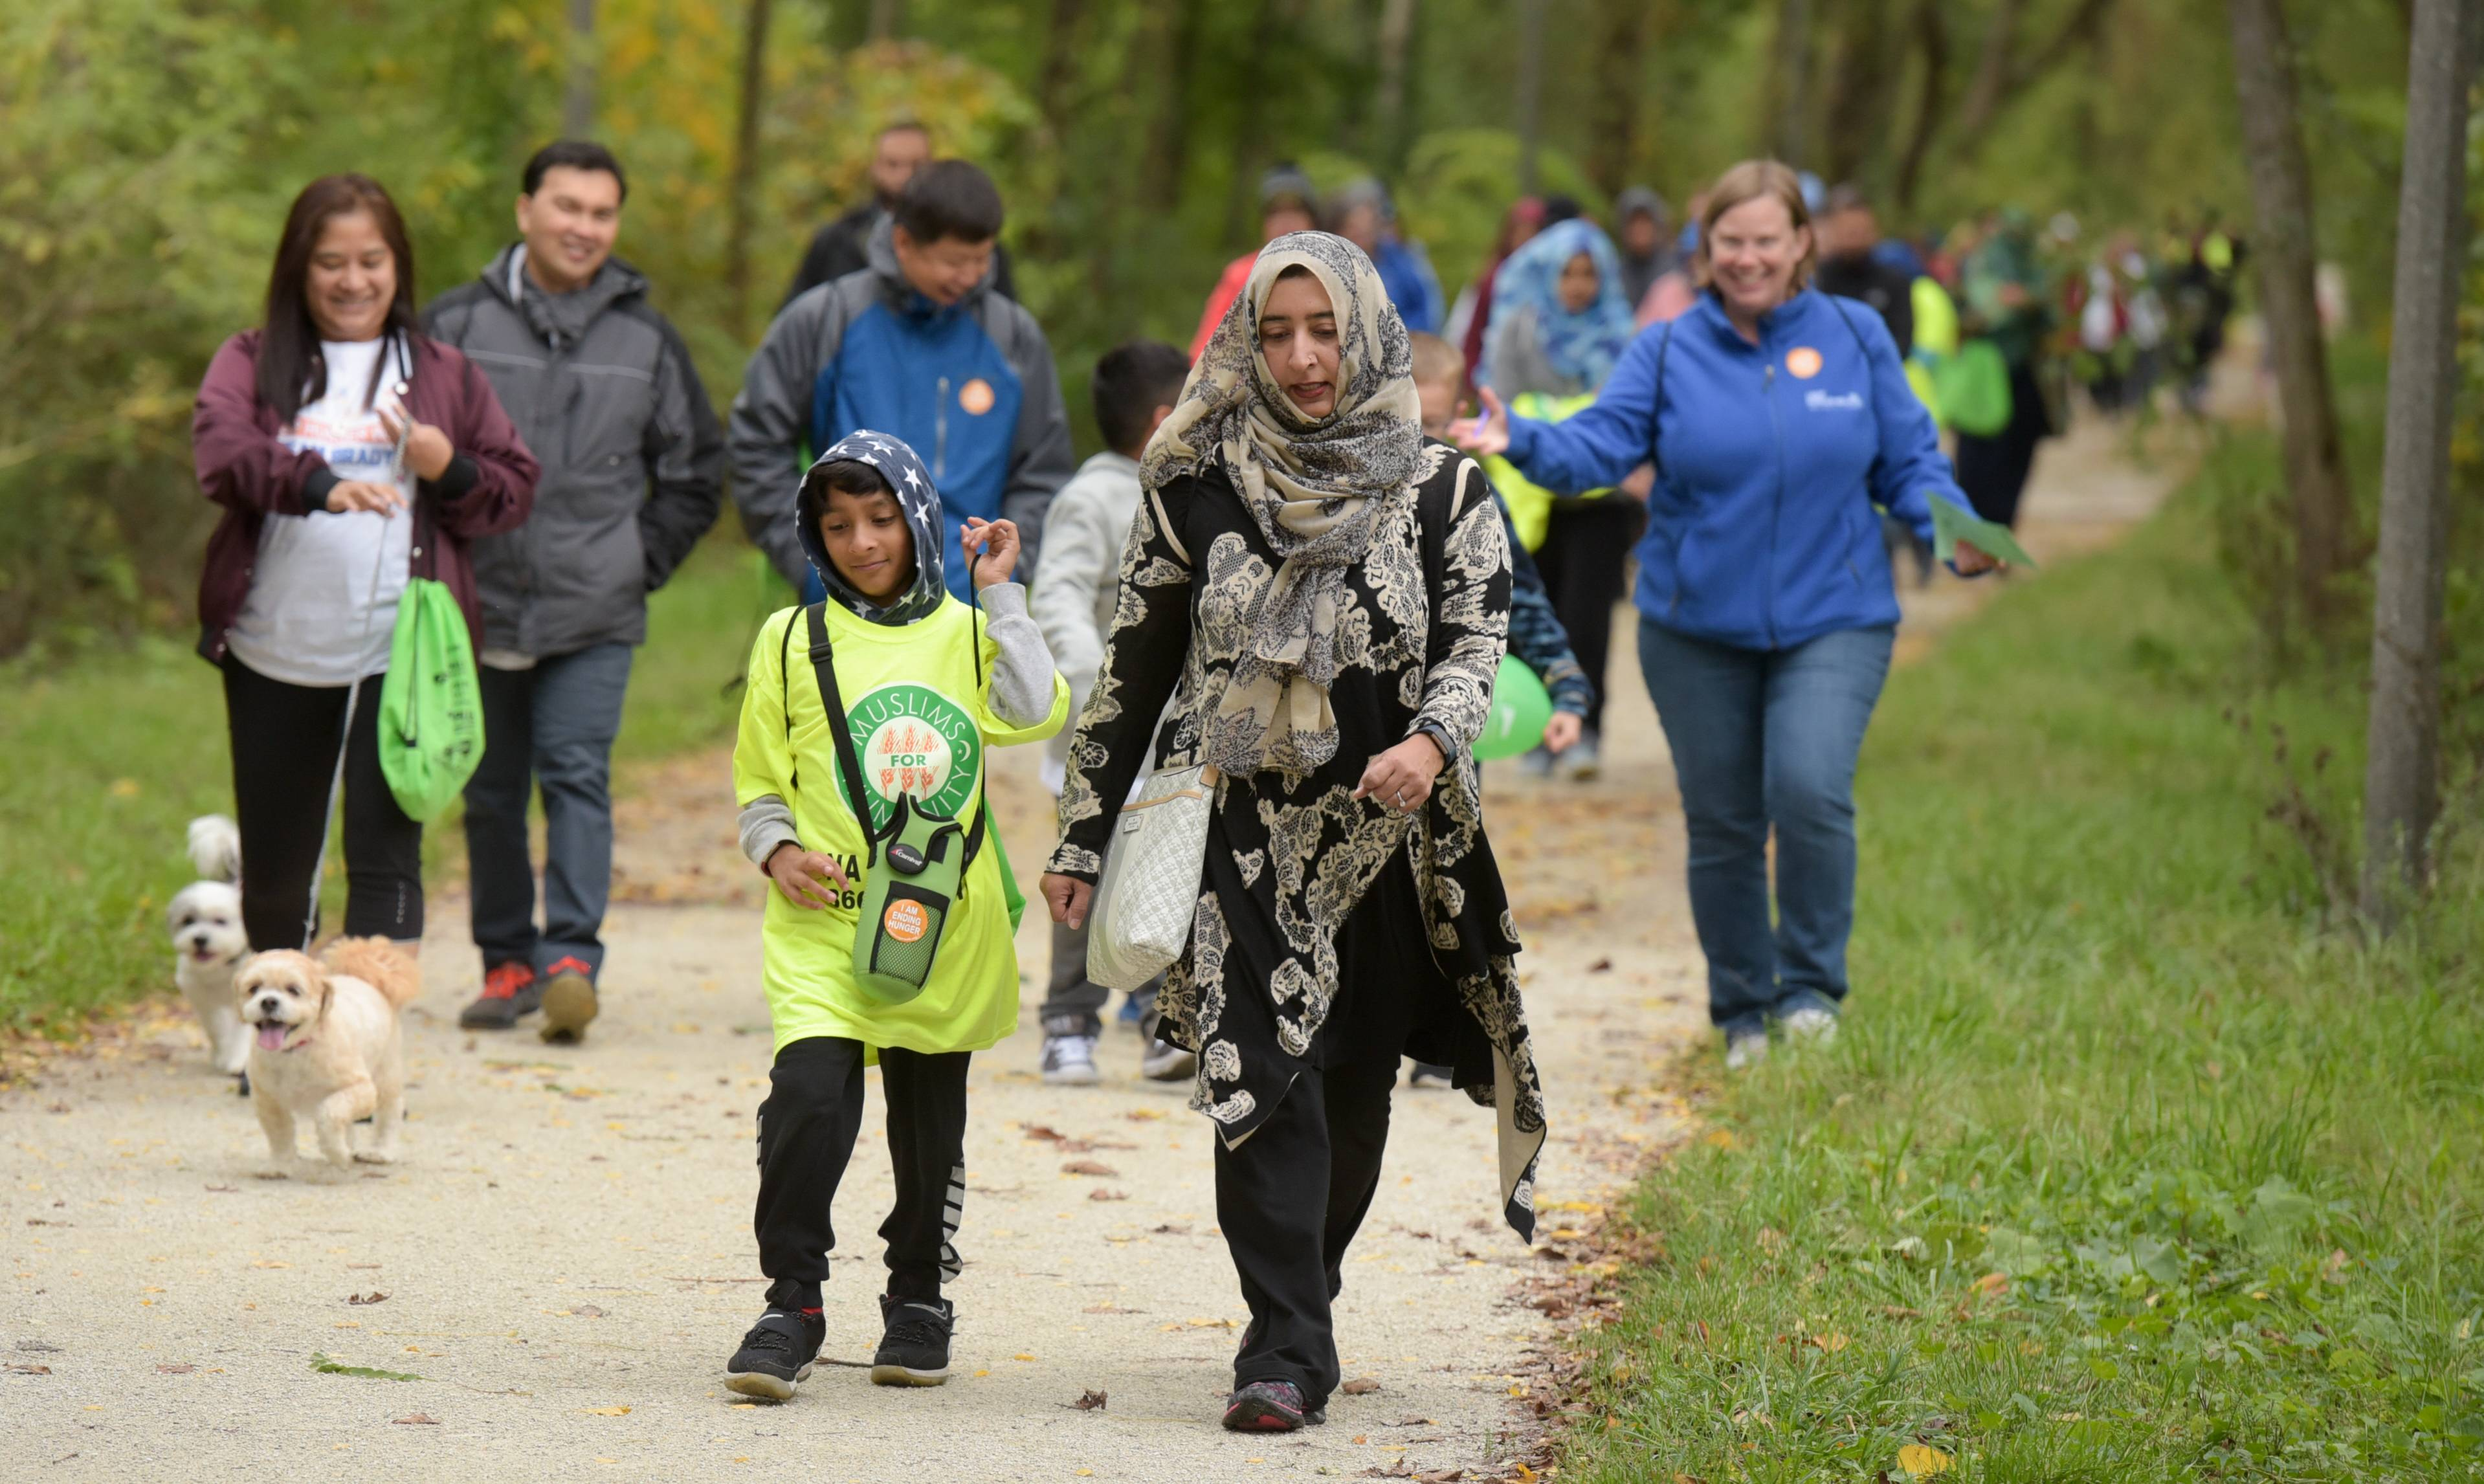 Fahteh Shahzad, 9, and his mother Munazza, of Lombard, walk along the Prairie Path on Sunday during the Great Prairie Trail CROP Walk in Lombard.